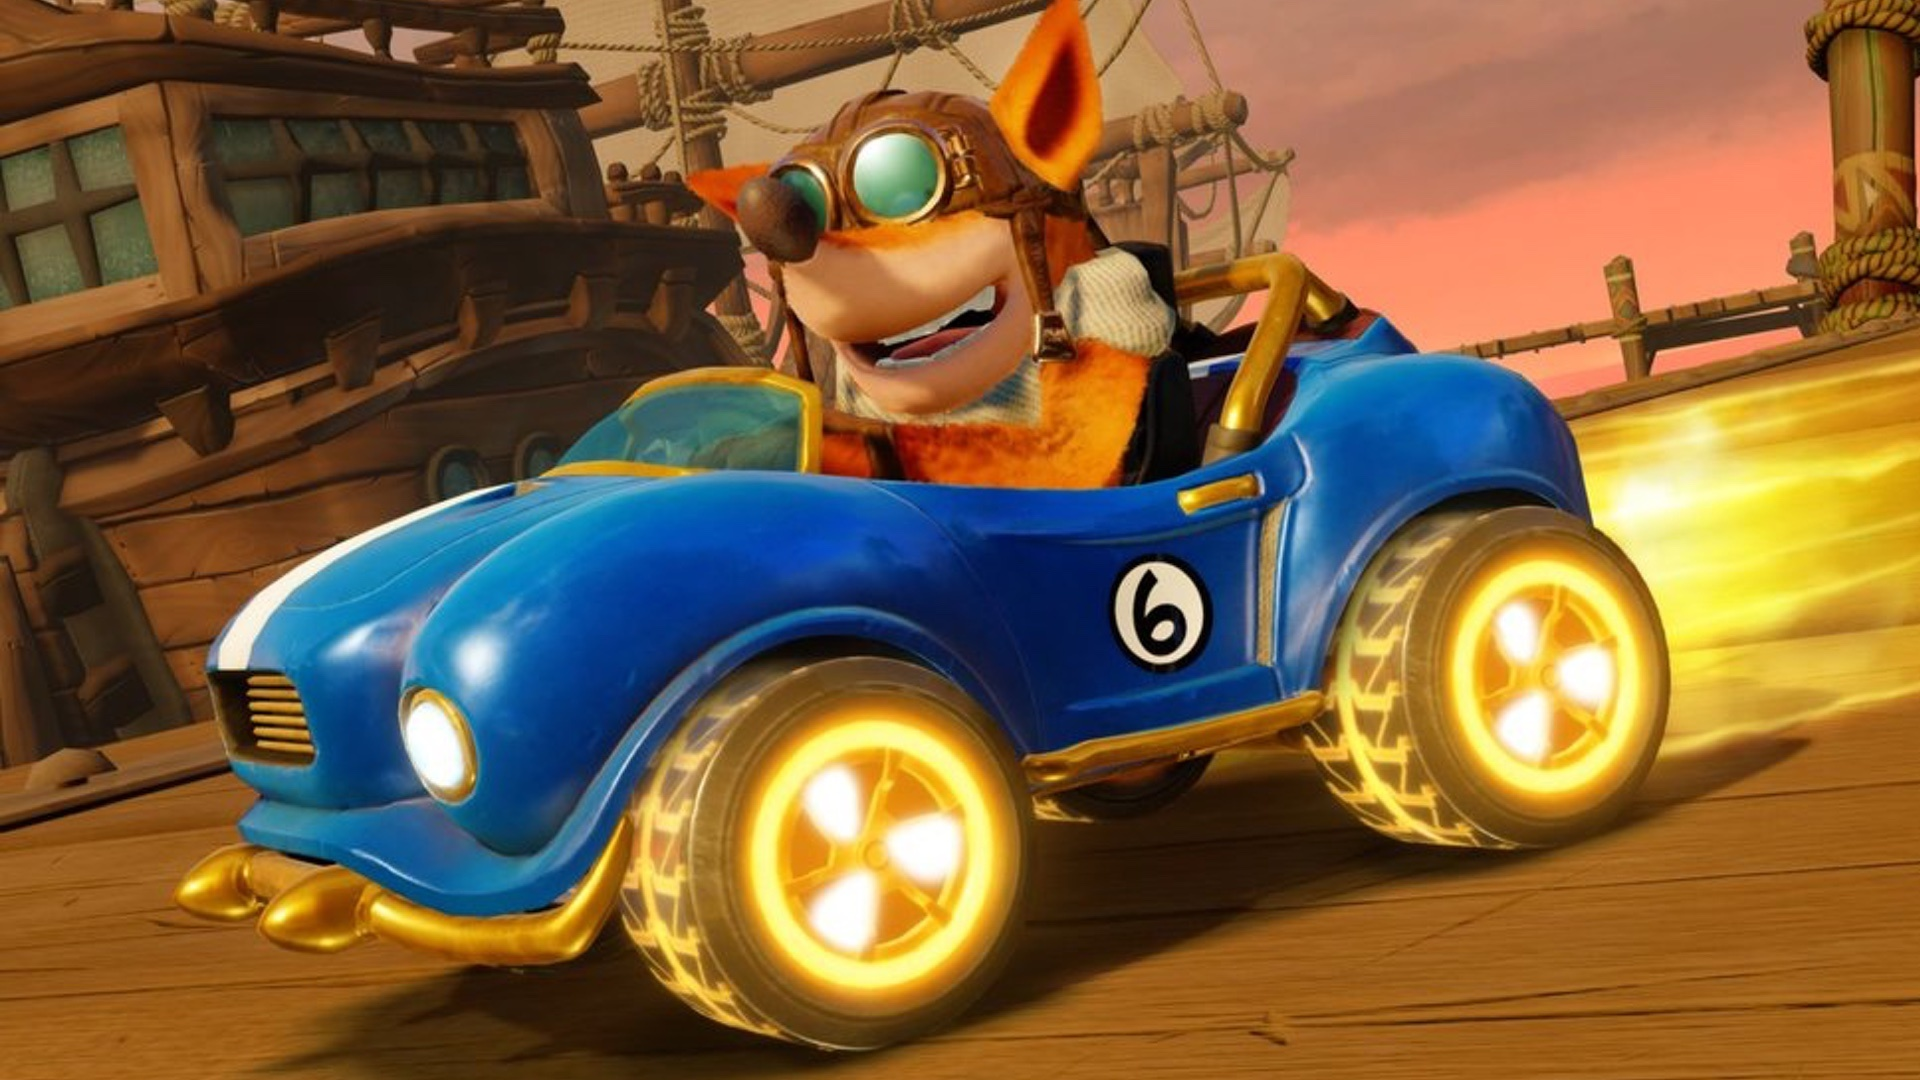 New Crash Bandicoot gameplay looks promising